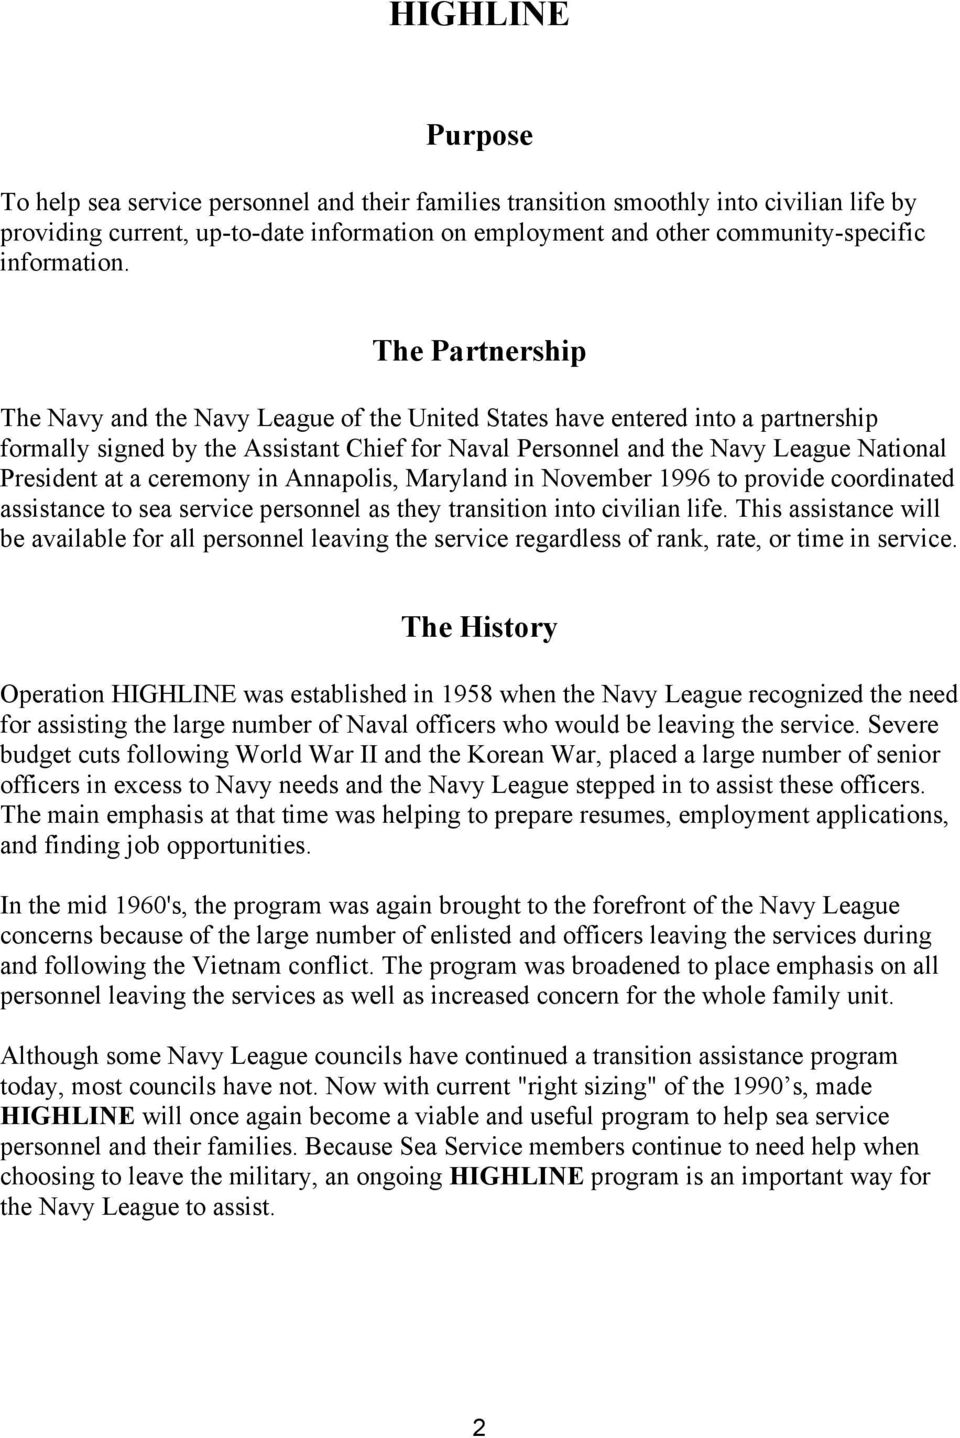 The Partnership The Navy and the Navy League of the United States have entered into a partnership formally signed by the Assistant Chief for Naval Personnel and the Navy League National President at